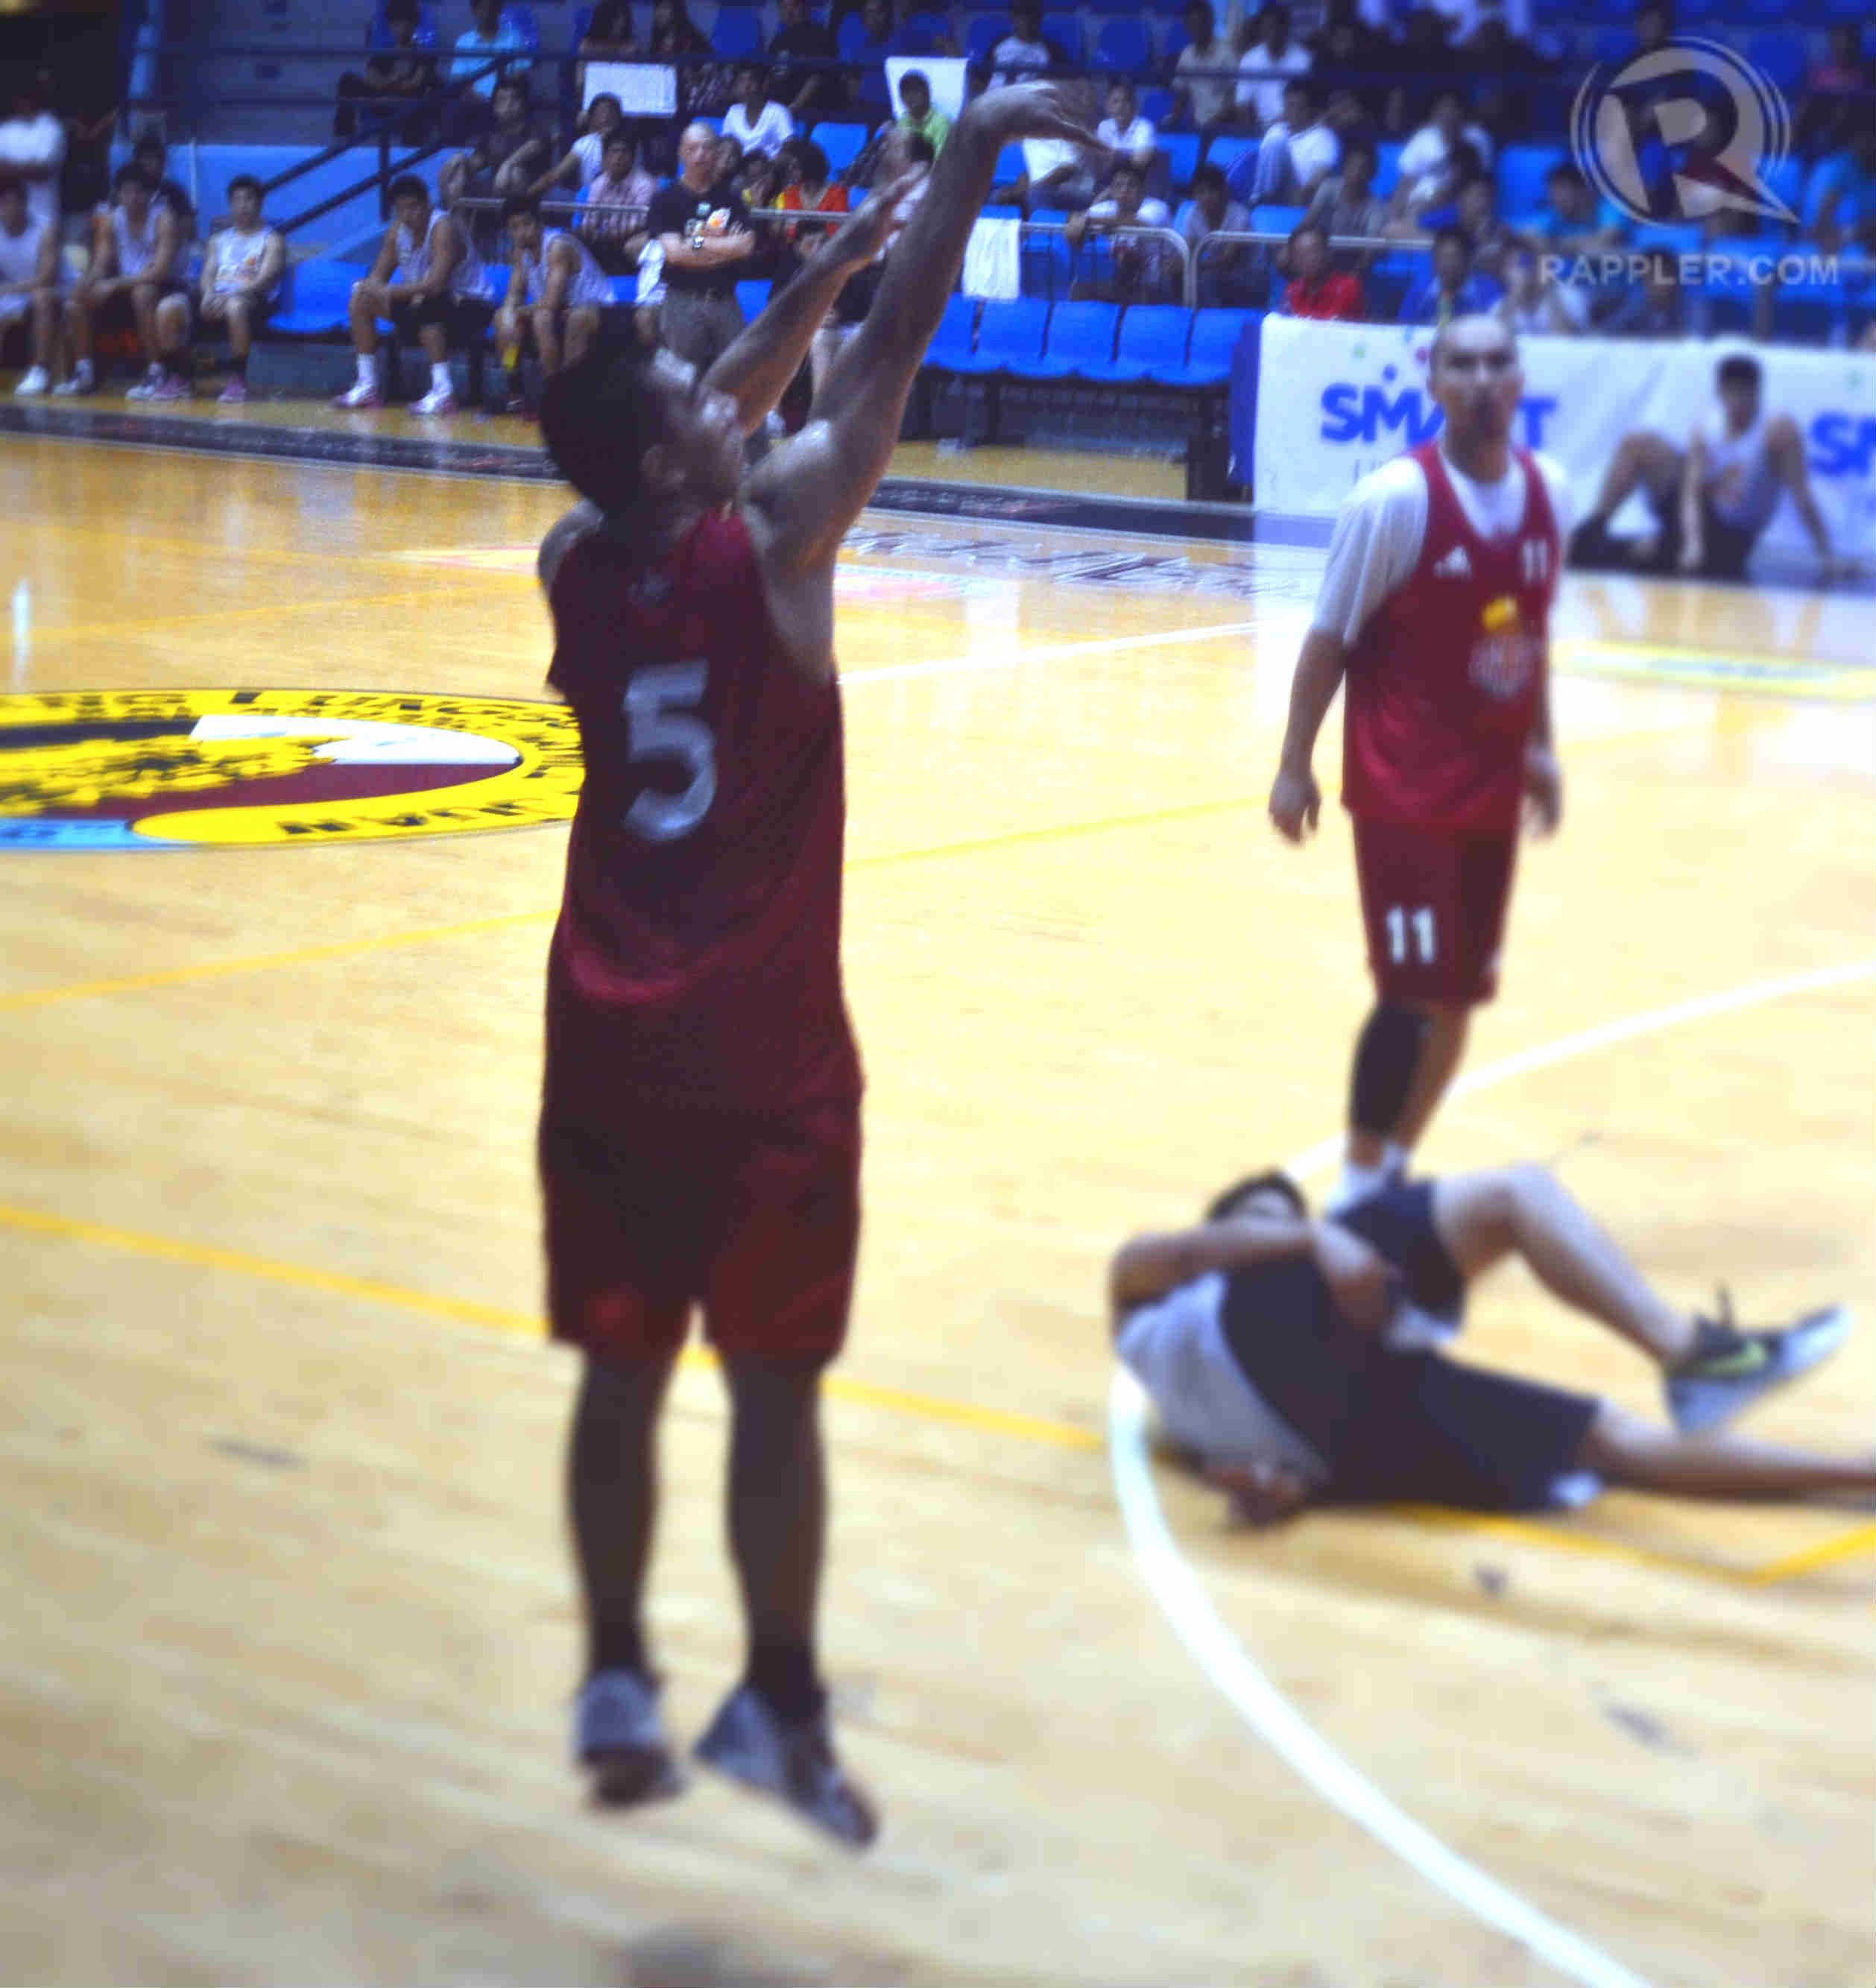 LA Tenorio goes up for a 3-pt shot in his first tune-up game with Ginebra.